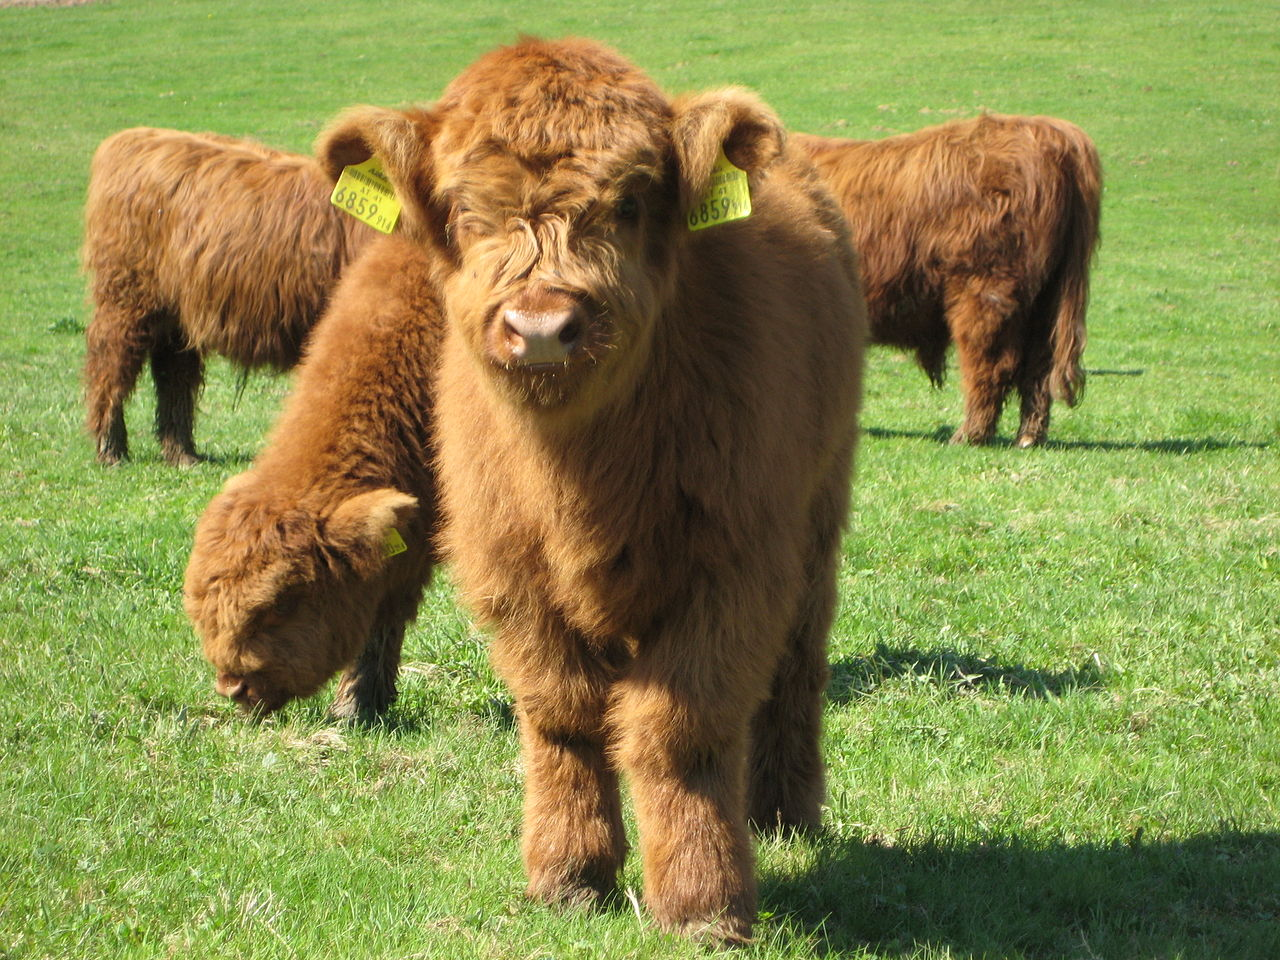 Baby highland cow - photo#11